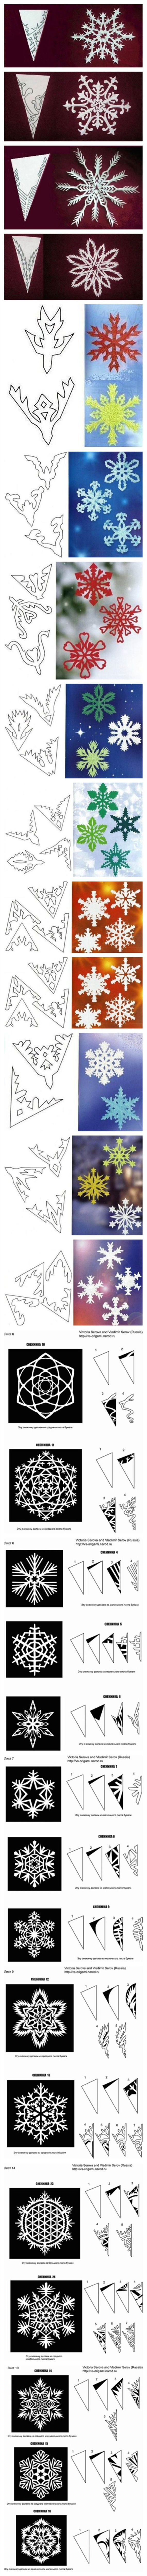 kid craft monday (snowflakes